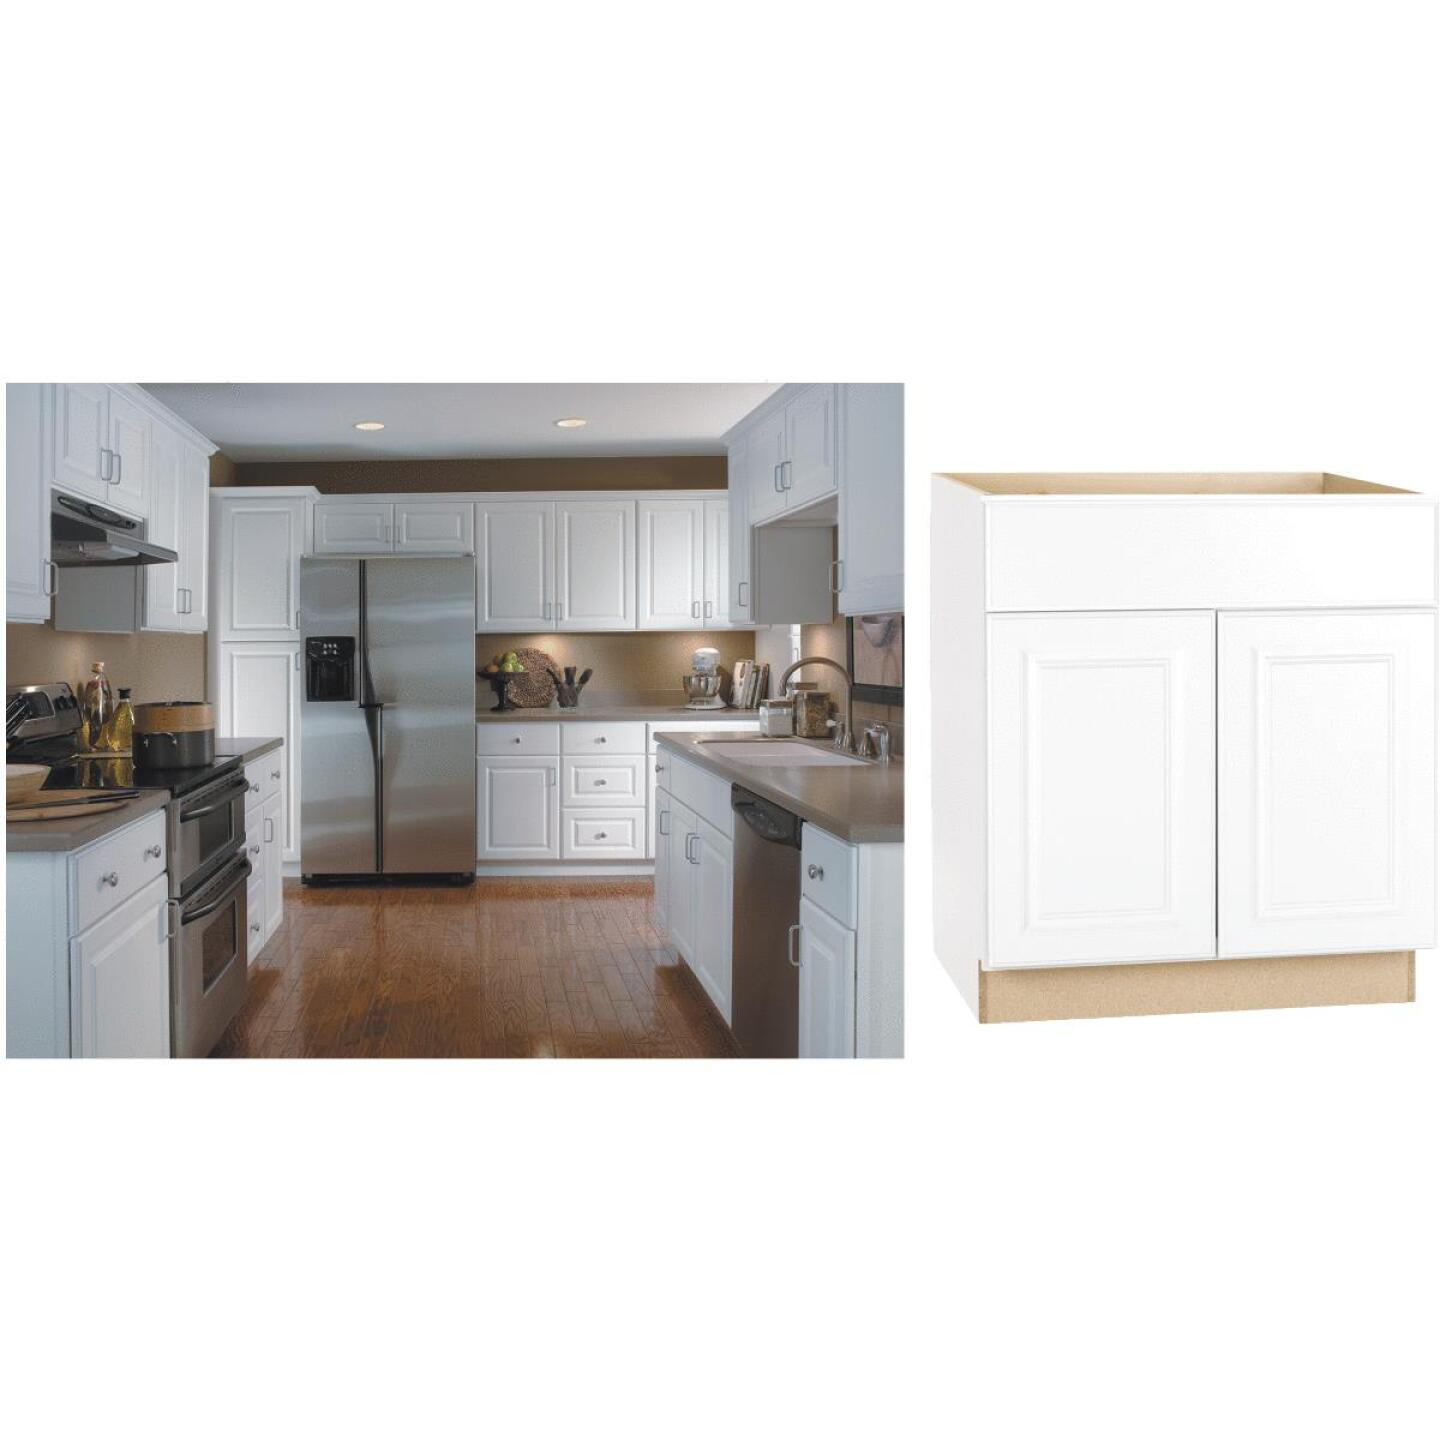 Continental Cabinets Hamilton 30 In. W x 34-1/2 In. H x 24 In. D Satin White Maple Base Kitchen Cabinet Image 1